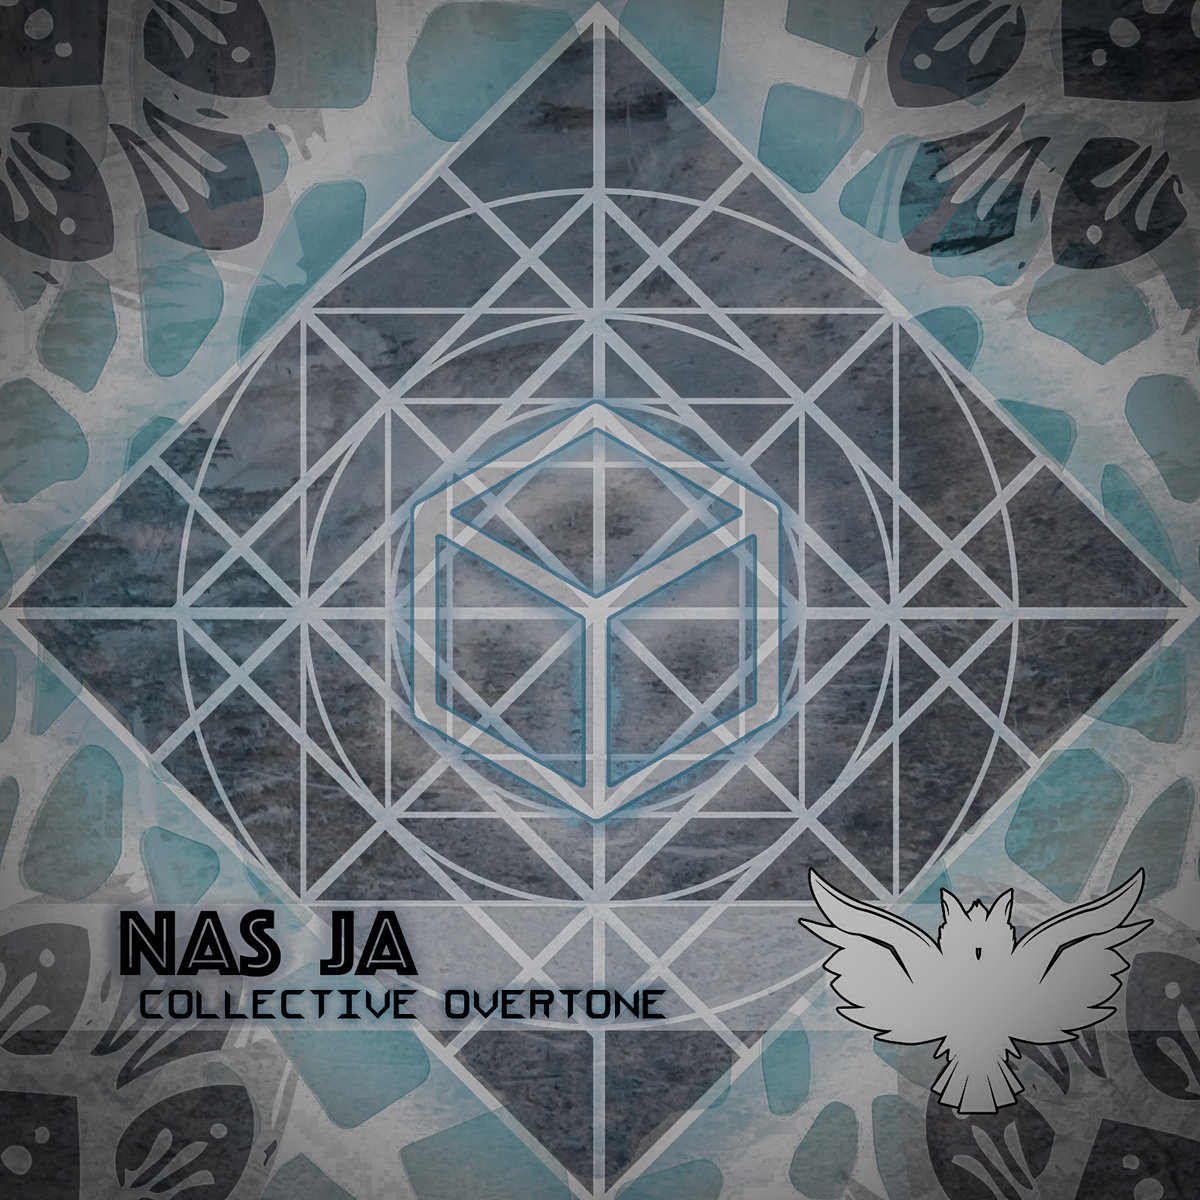 Nas-Ja - DropLet @ 'Collective Overtone' album (bass, electronic)